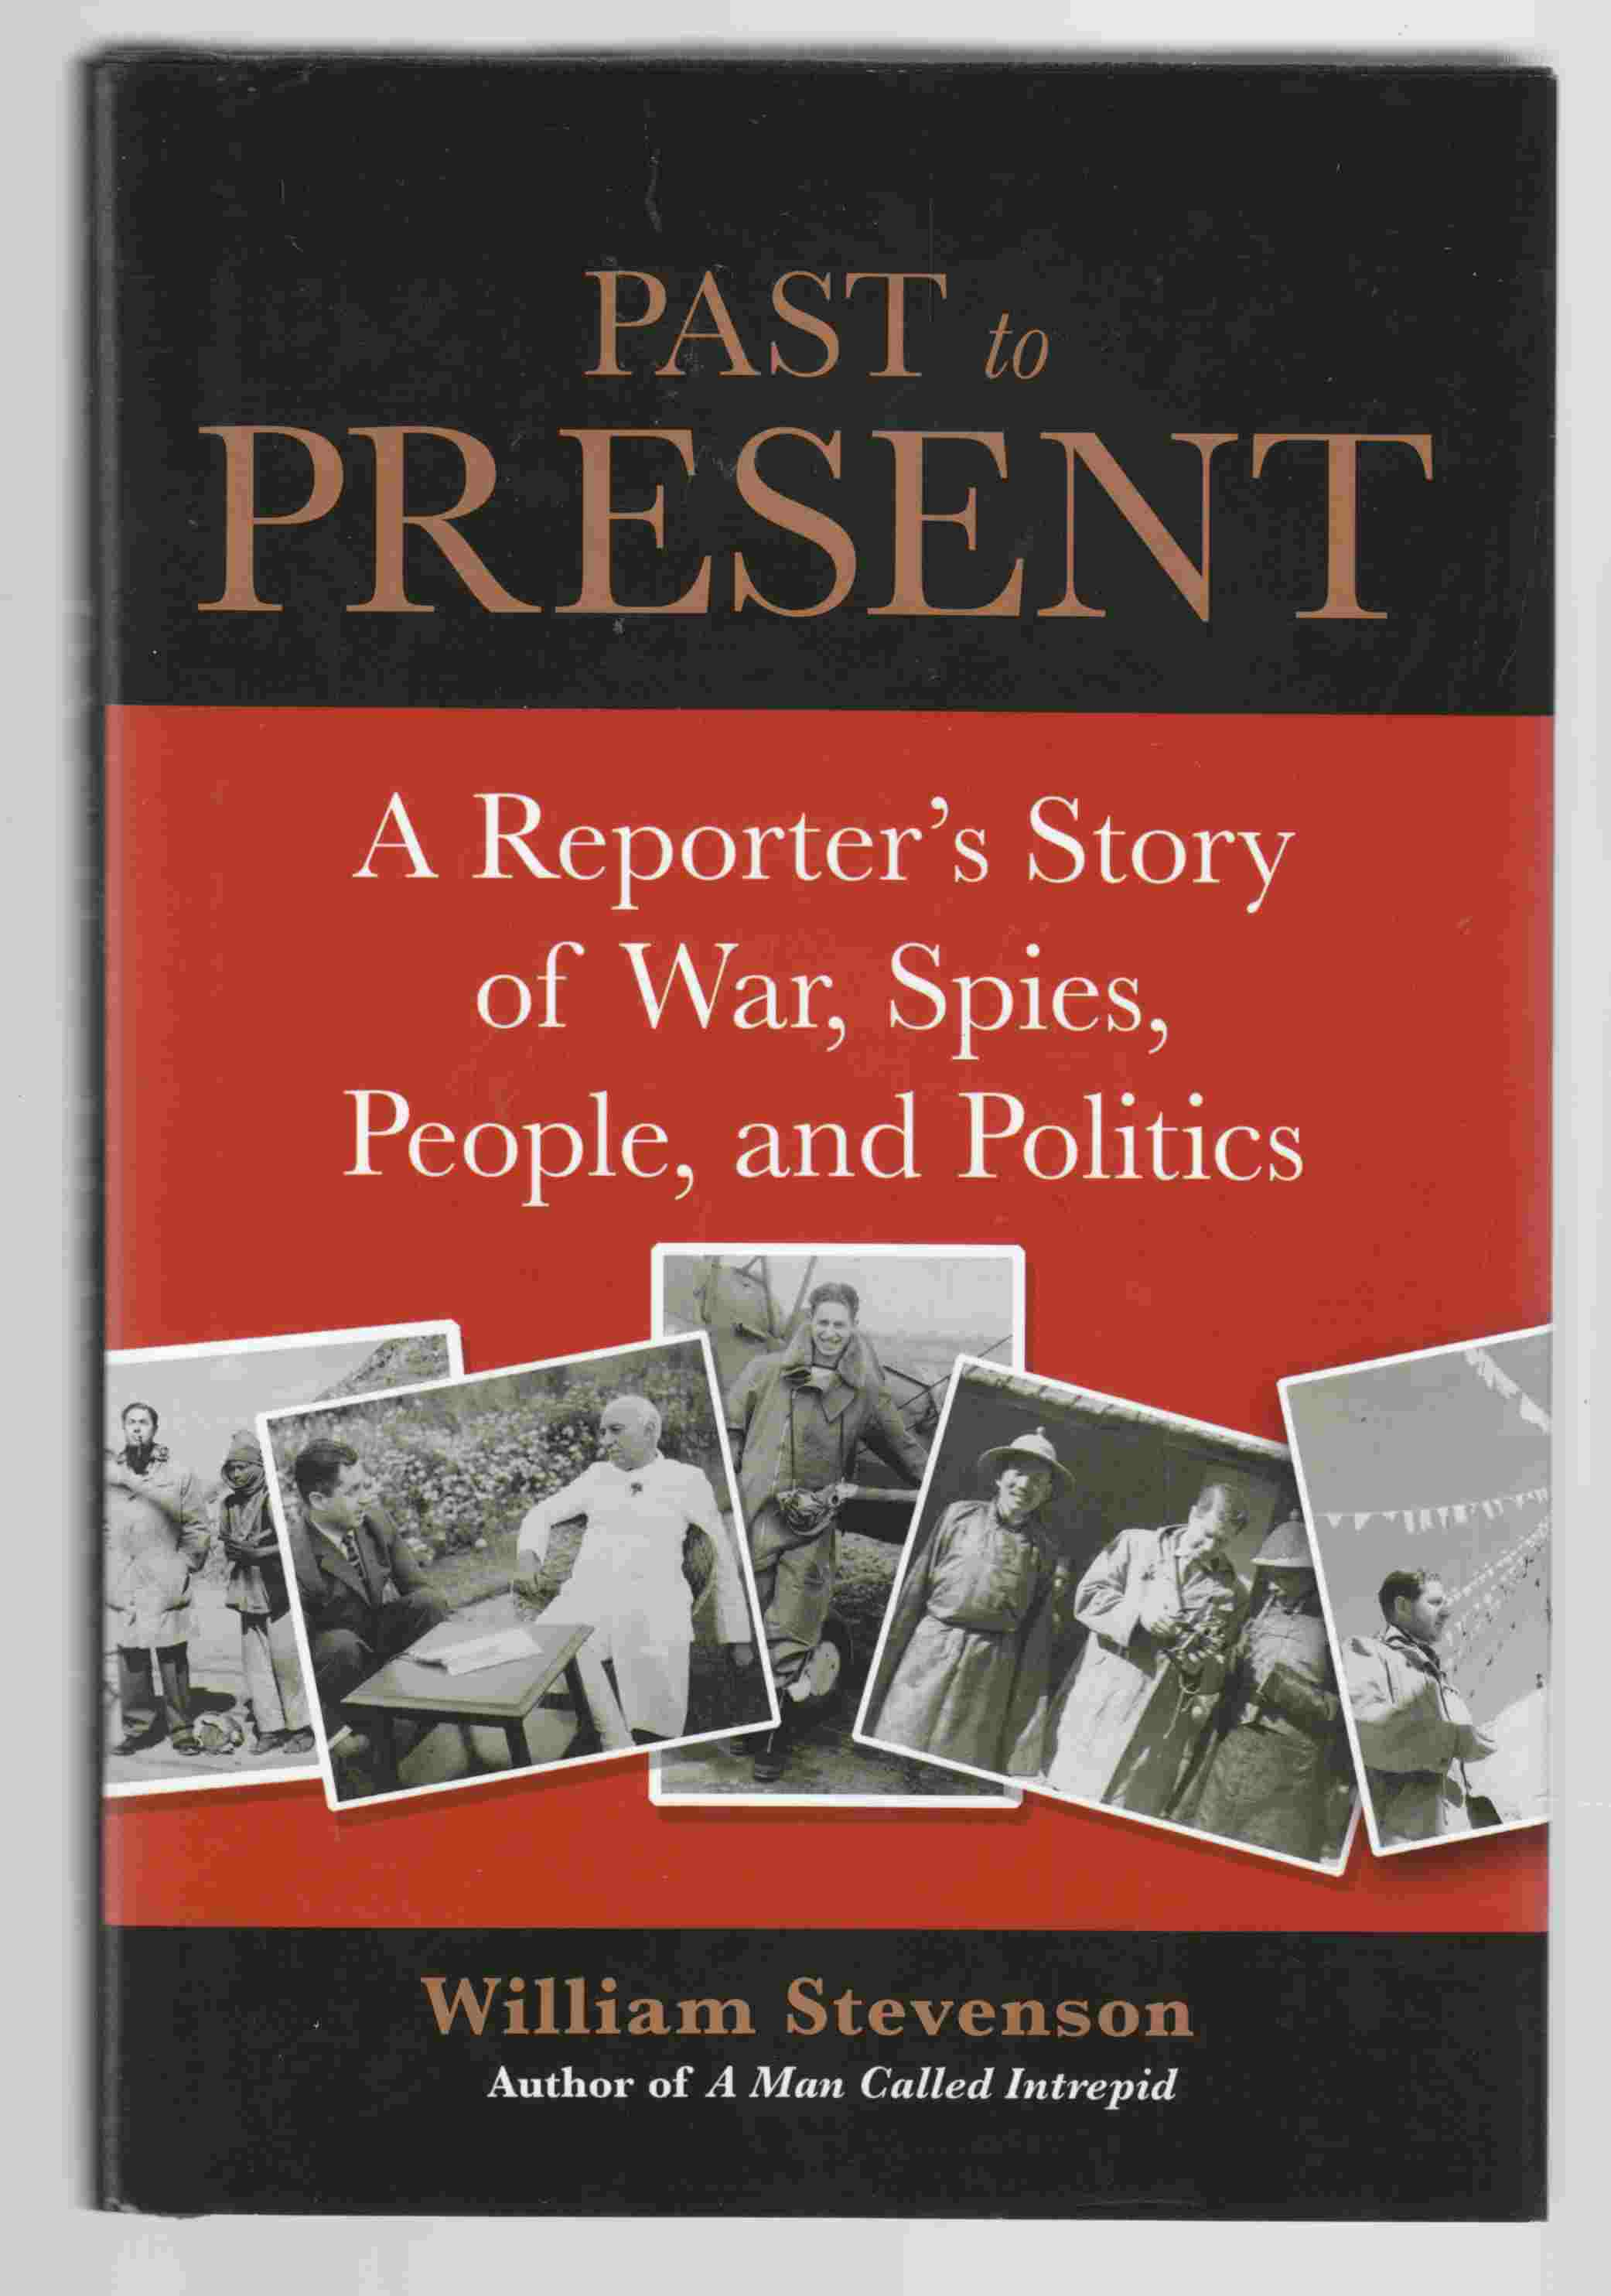 Image for Past to Present A Reporter's Story of War, Spies, People and Politics